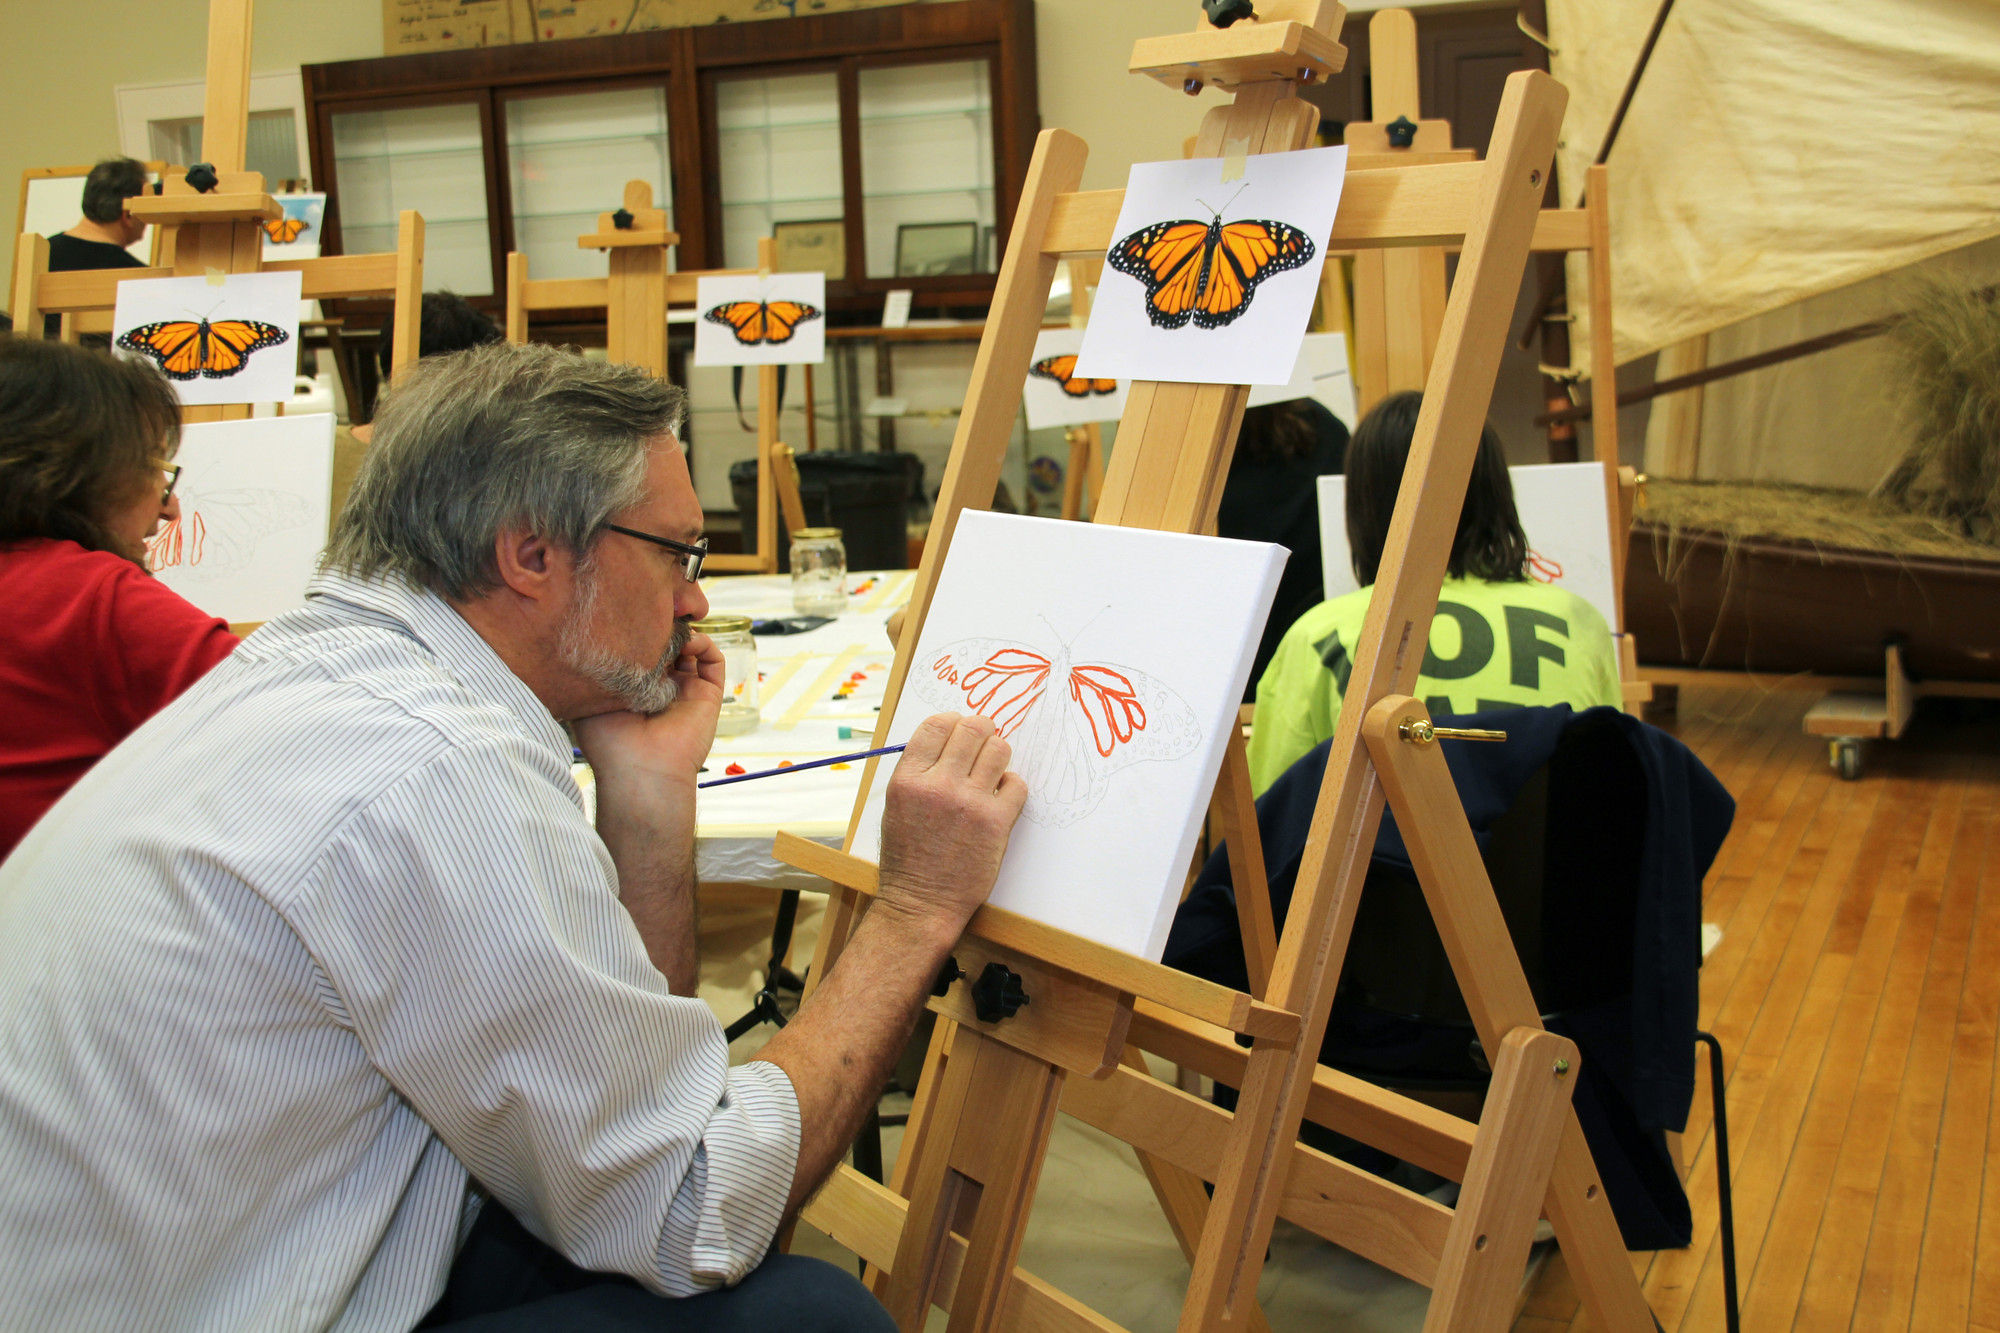 Mark Wurthmahn worked on his butterfly piece at Paint Night at the Museum on April 15, hosted by the Seaford Historical Society.